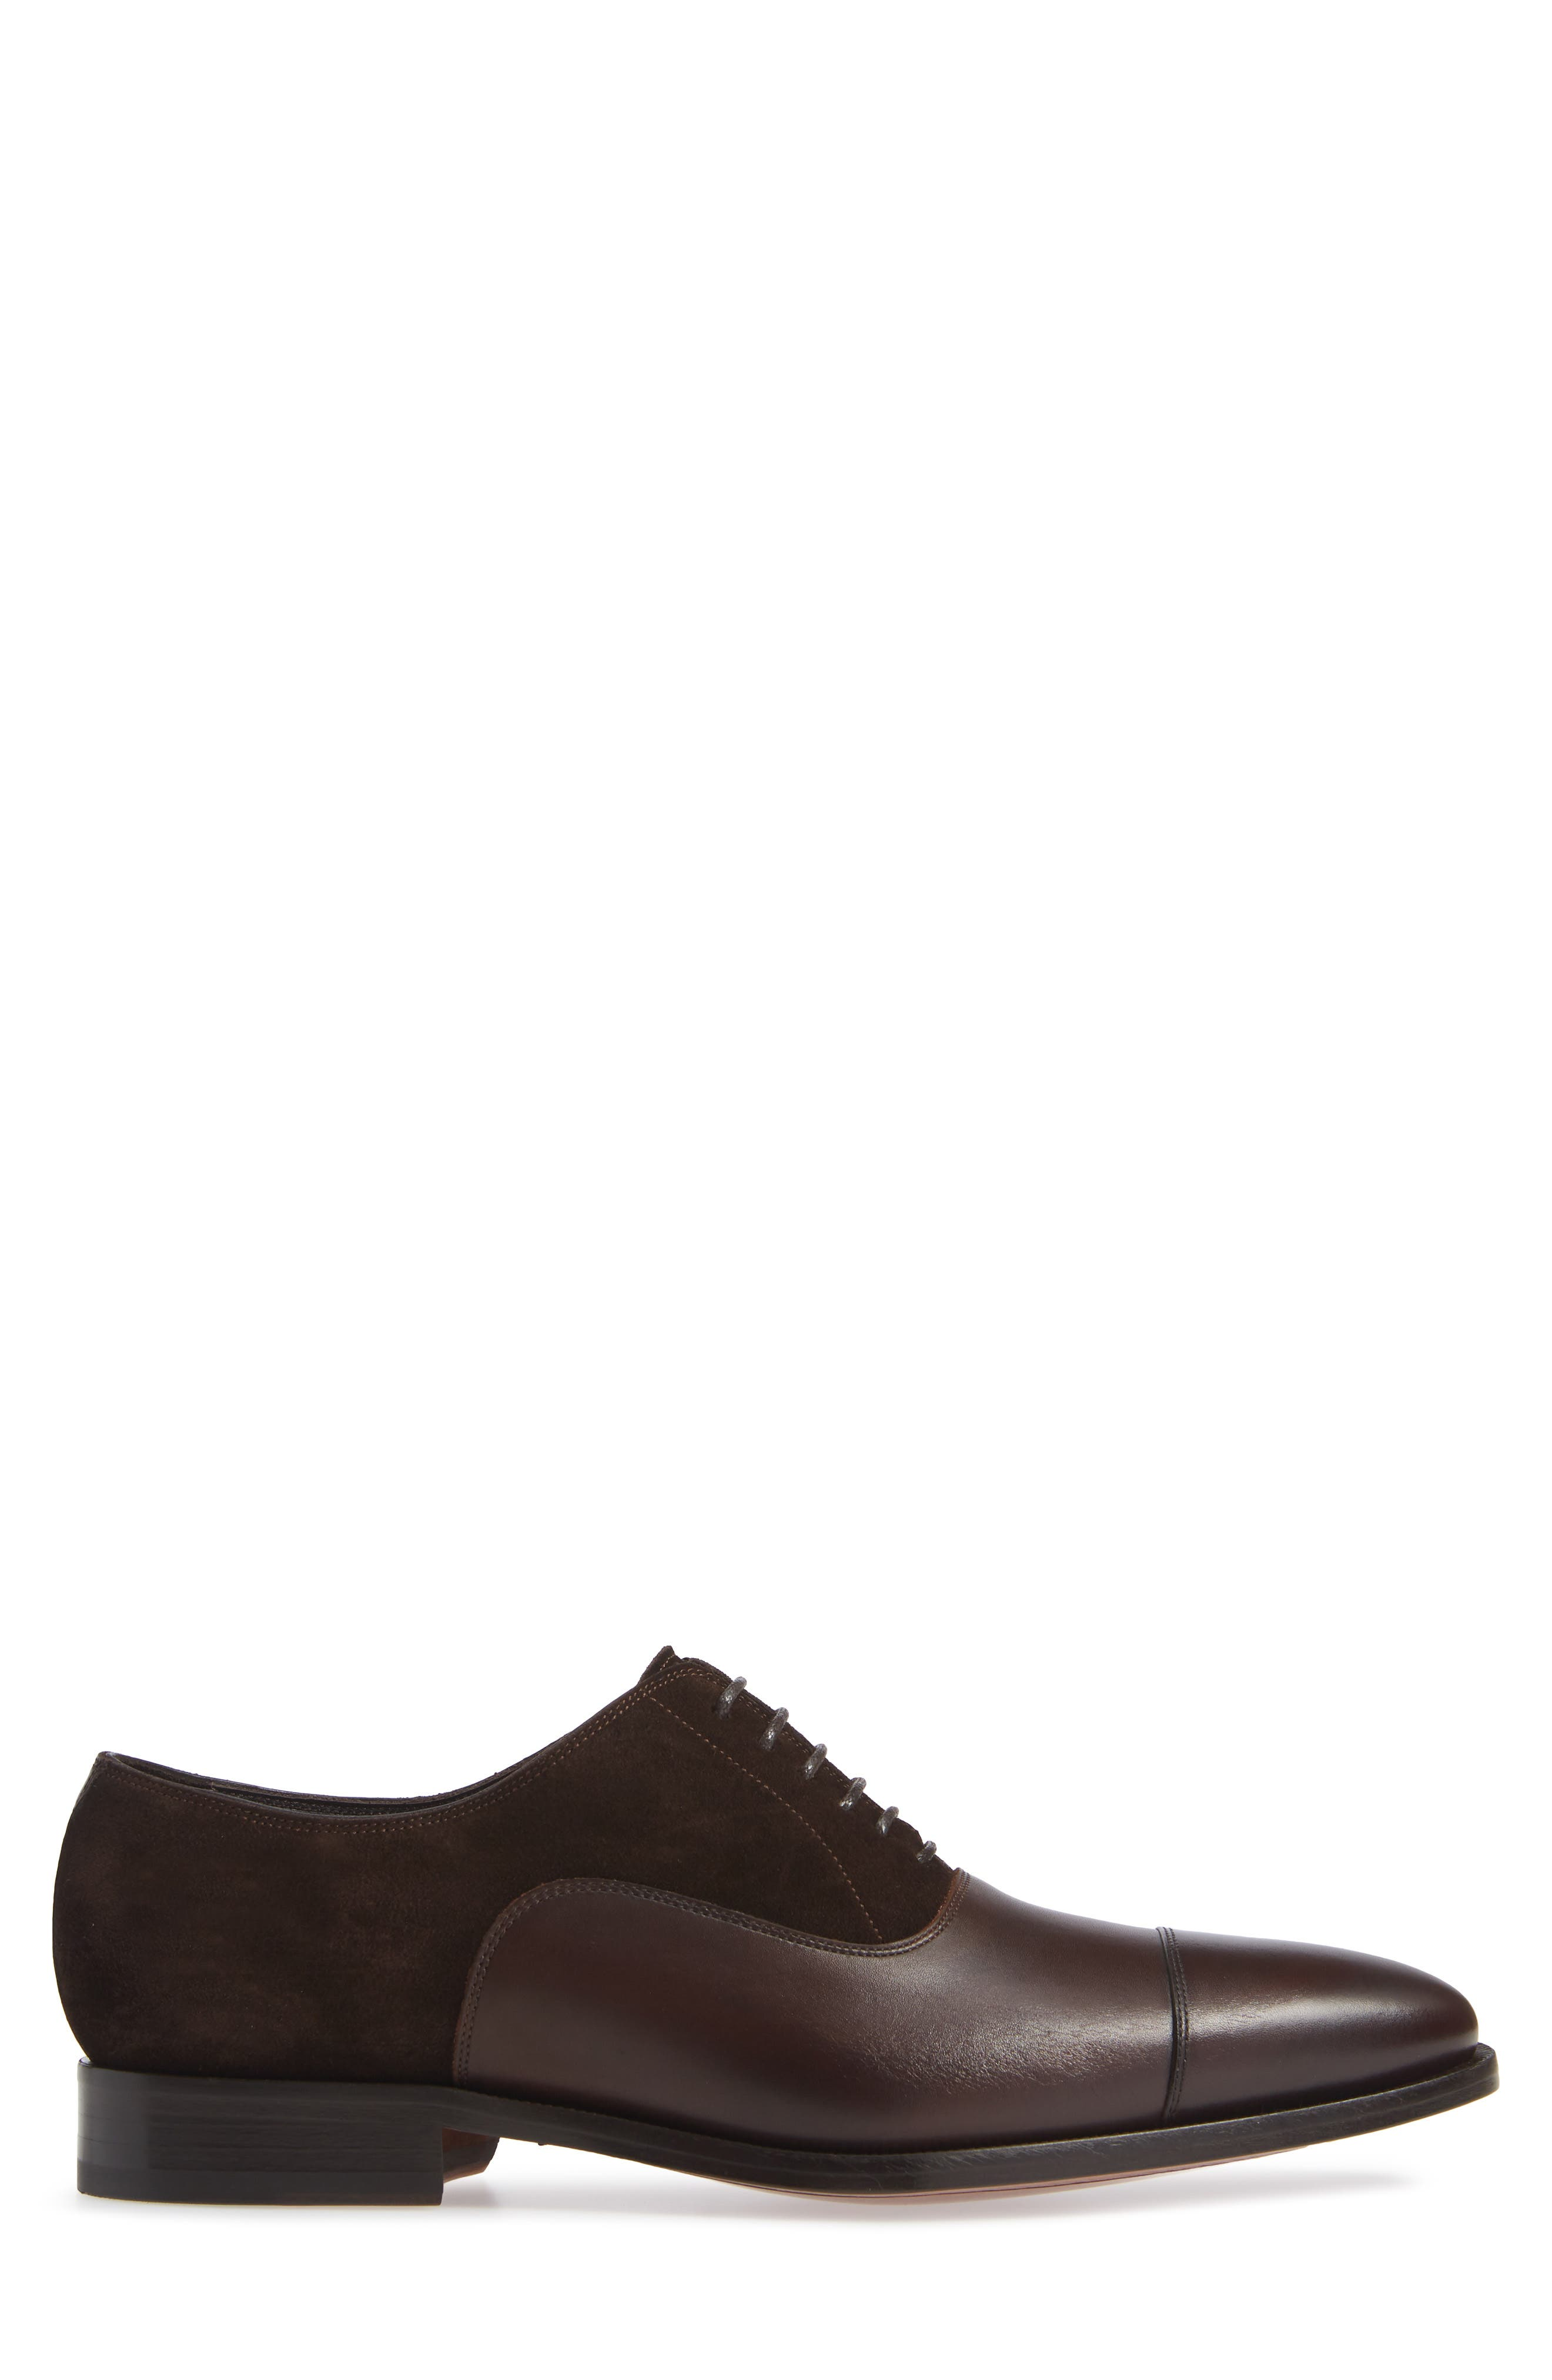 Amadora Cap Toe Oxford,                             Alternate thumbnail 3, color,                             BERRY/ BROWN LEATHER